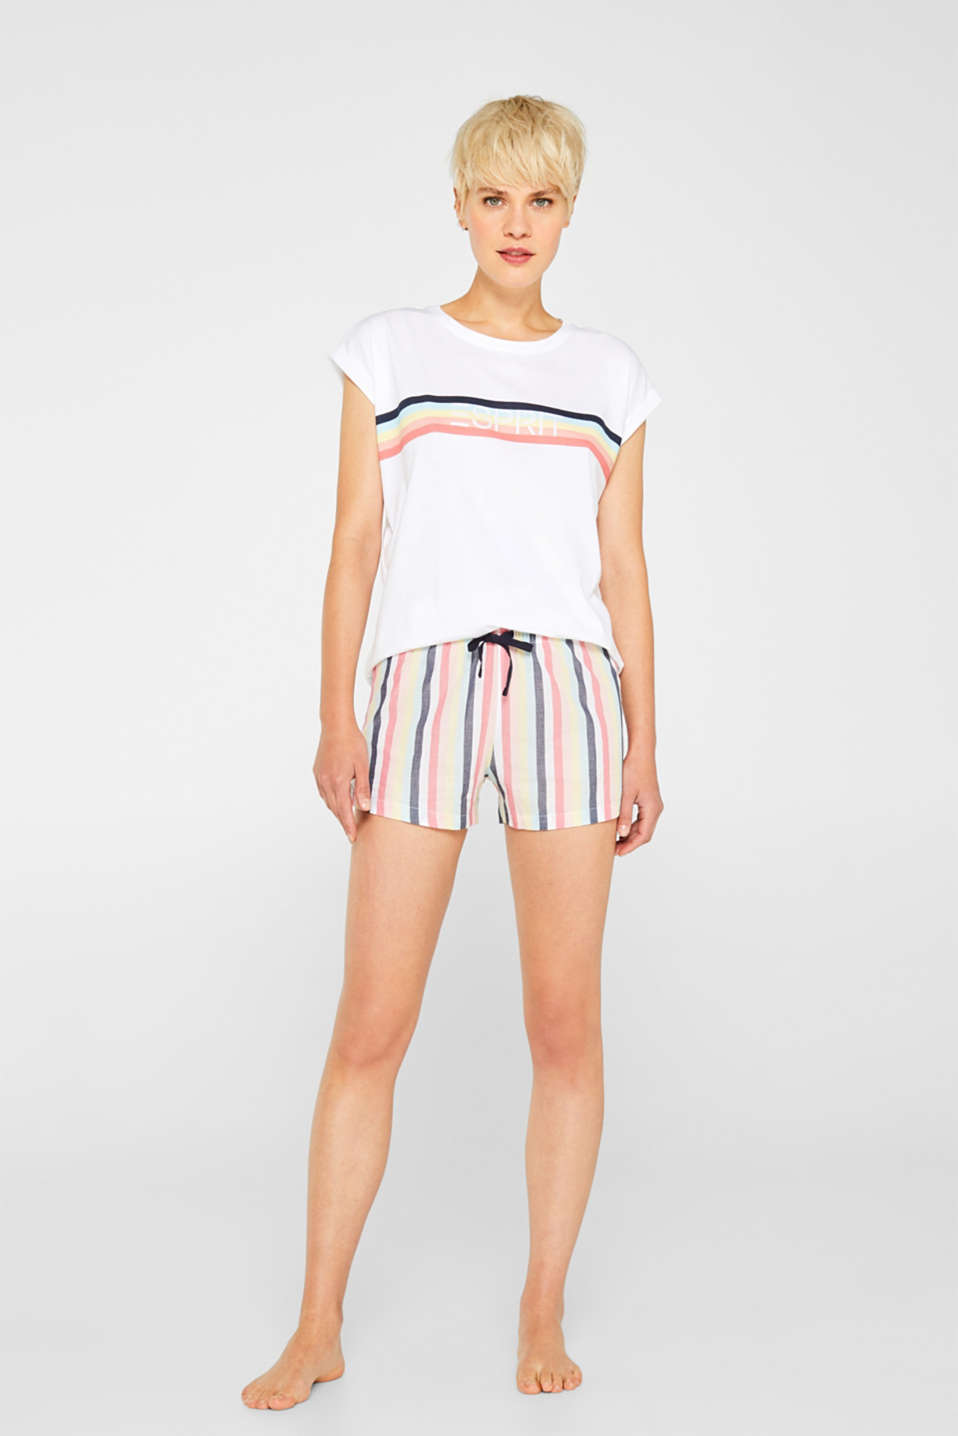 Esprit - T-shirt with a striped logo print, 100% cotton